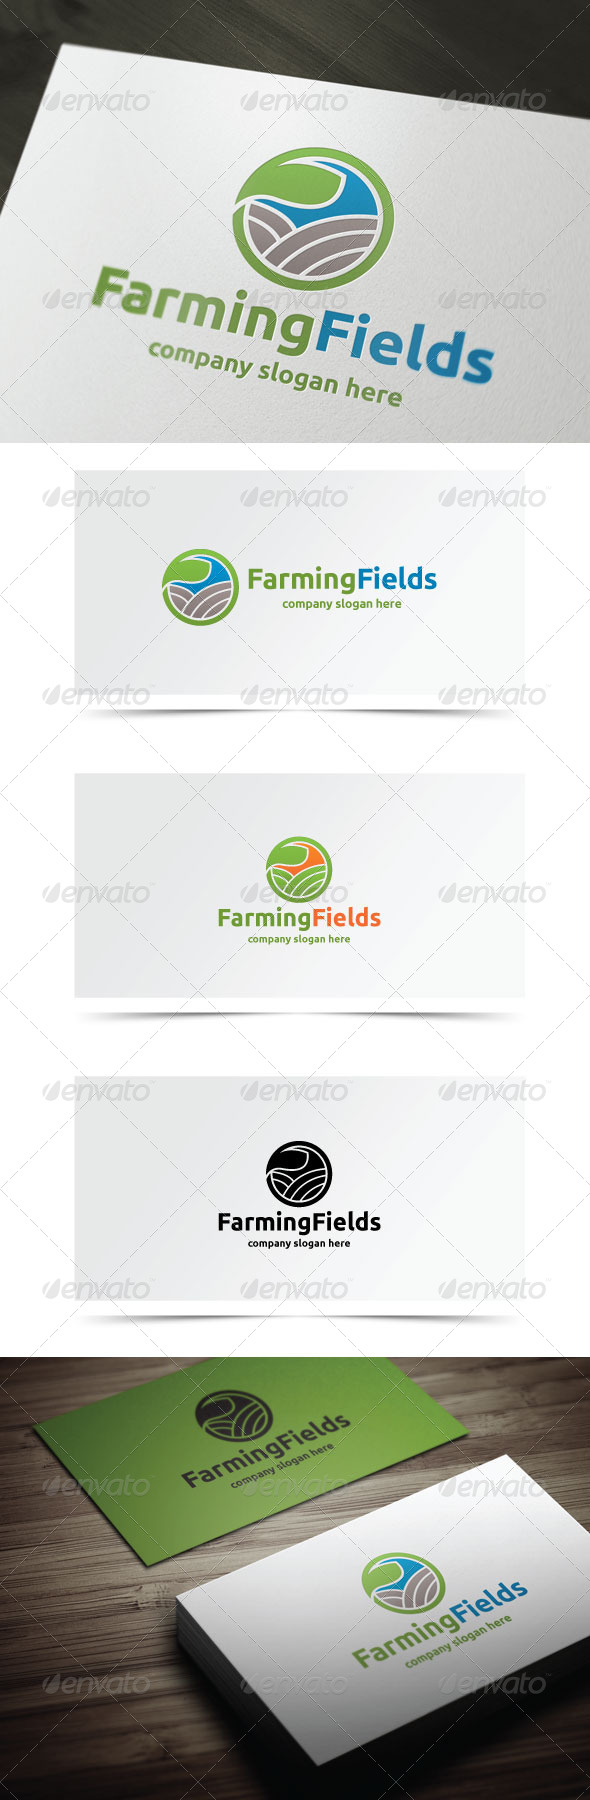 GraphicRiver Farming Fields 7841913